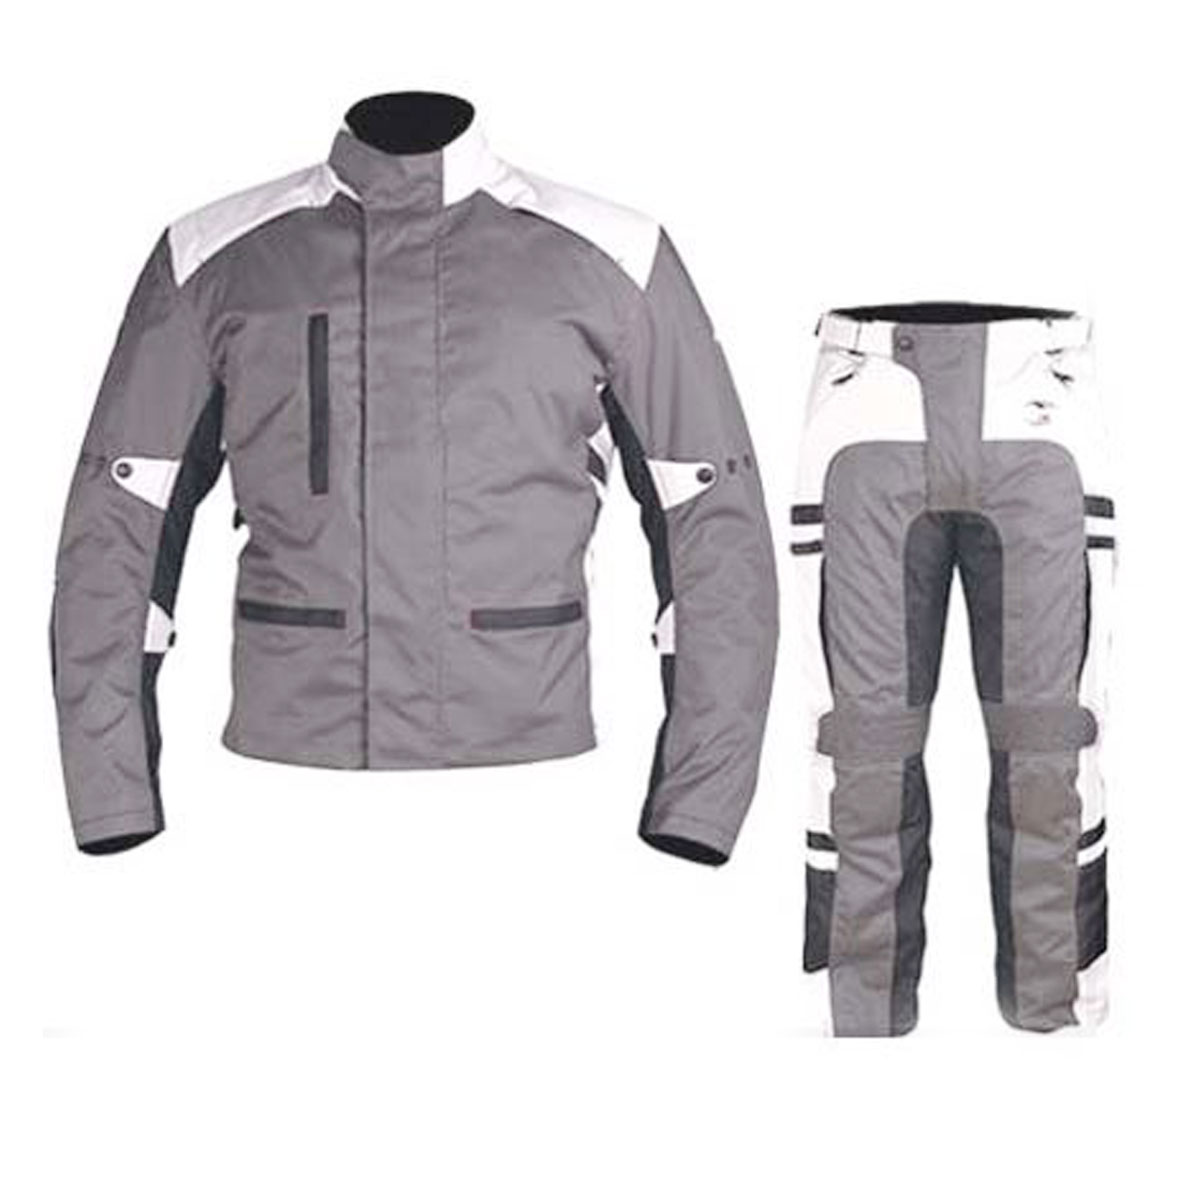 GREY & WHITE CORDURA SUIT